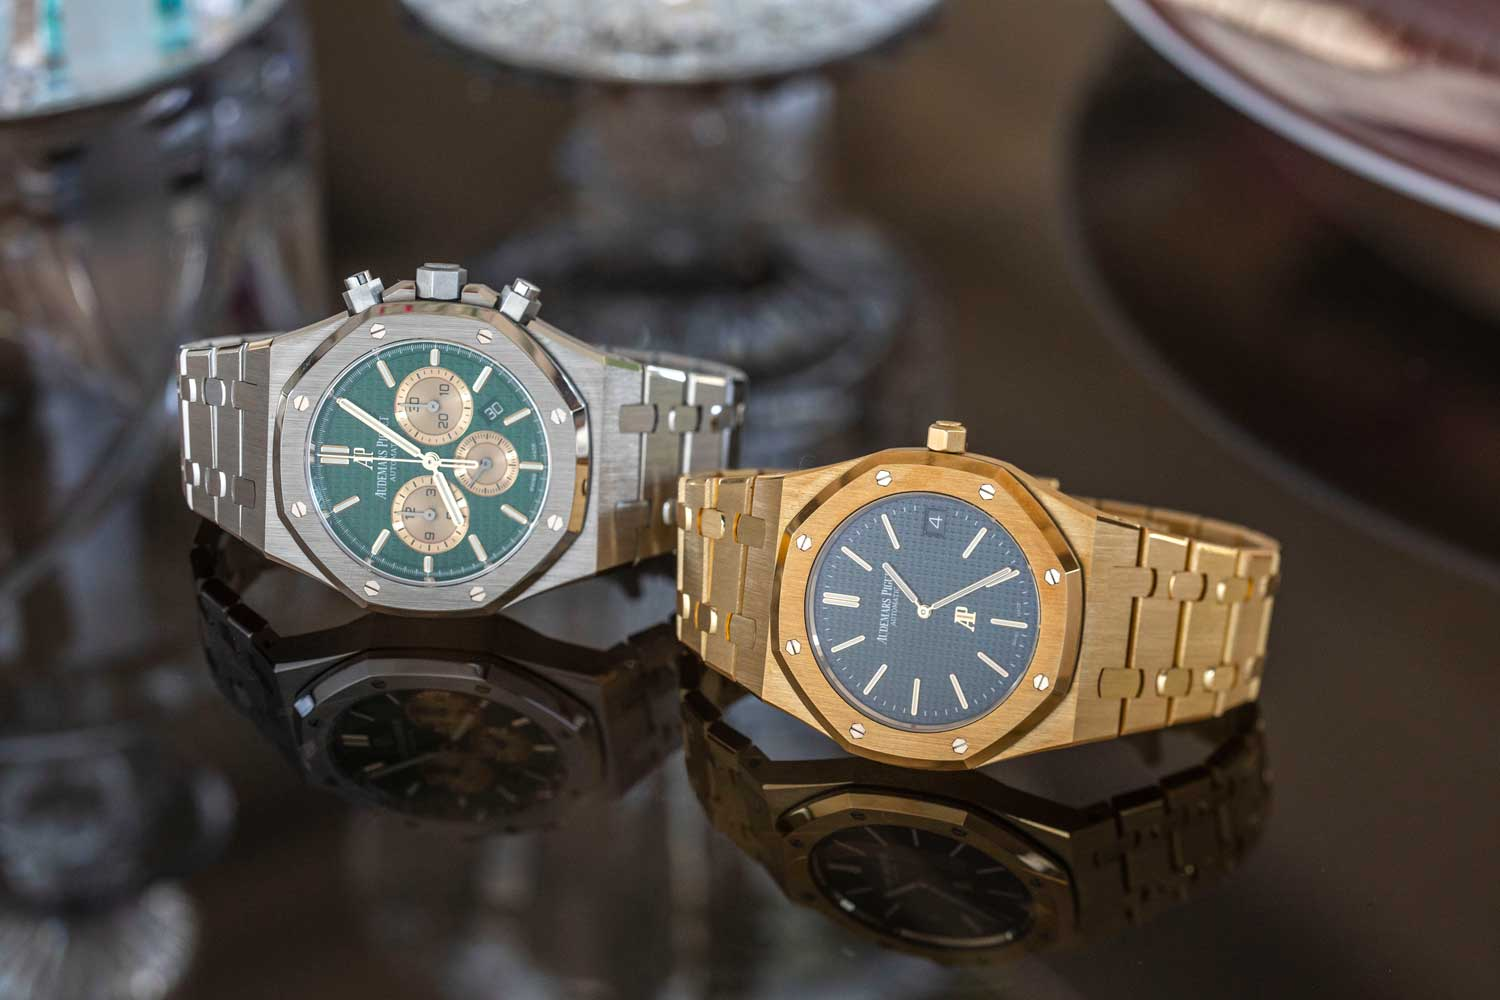 The Royal Oak Chronograph The Hour Glass Edition in platinum with a green dial and contrasting yellow-gold subdials and indexes, which was made in just 20 examples and the Audemars Piguet Royal Oak Extra-Thin The Hour Glass Limited Edition in yellow-gold with a green dial, made in a series of 50 watches (©Revolution)